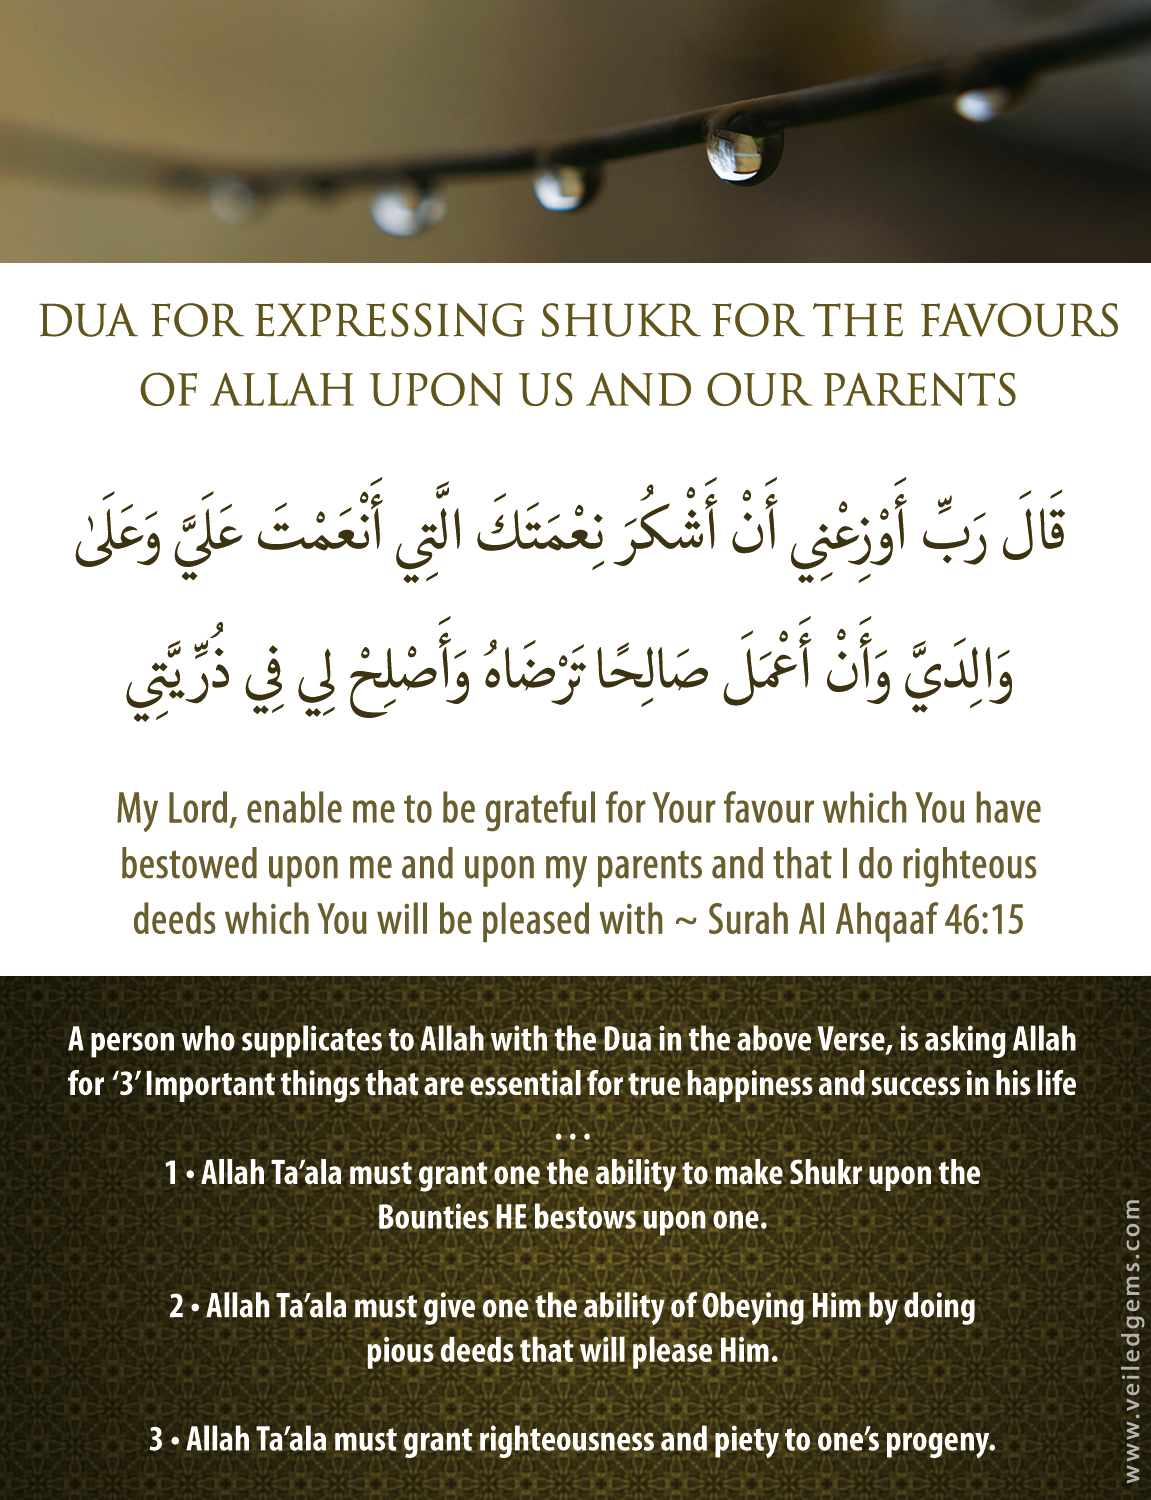 islaah.co.za.Dua.Expressing.Shukr.Favours.Allah.Upon.Us.and.Parents